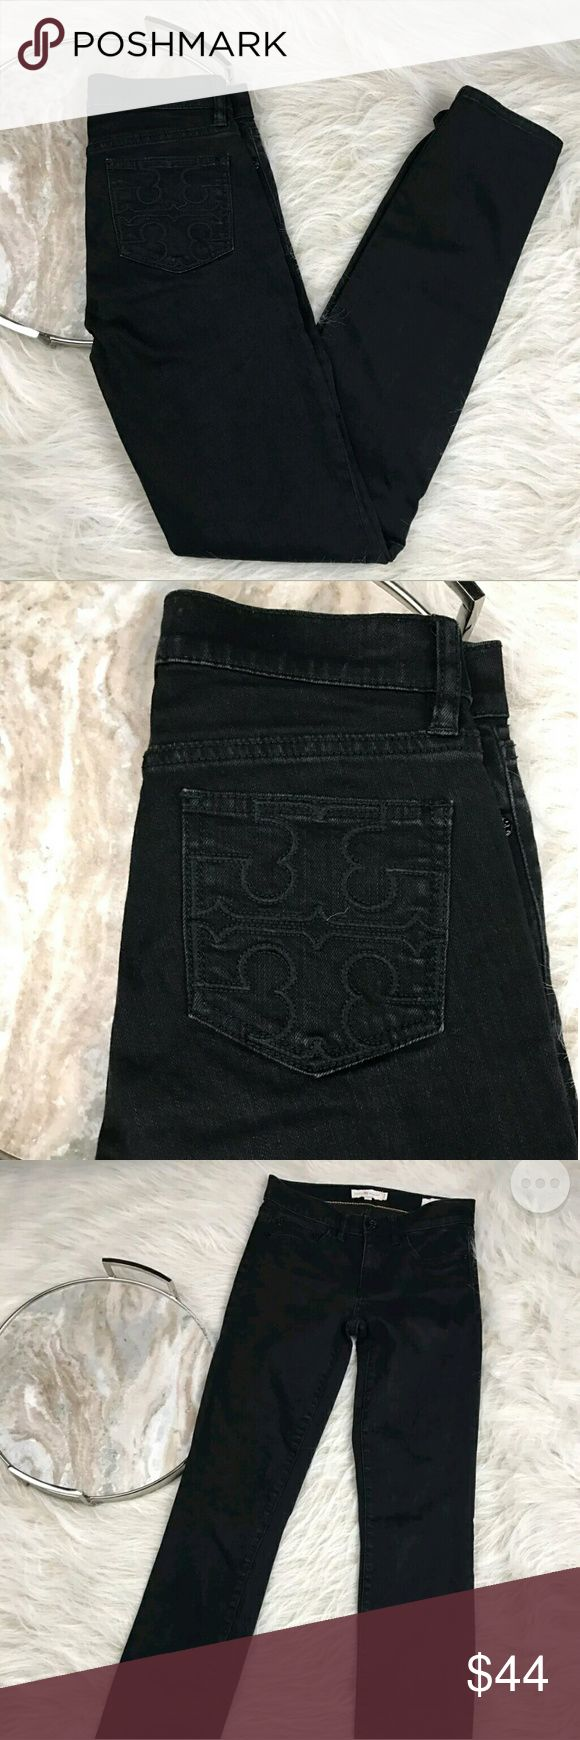 "Tory Burch Stretch Super Skinny Jeans Tory Burch Signature black super skinny jeans stretch denim jeans. Womens size 25. Gently used, without flaws. See pictures for details.  Waist laying flat - 13"" Rise - 8"" Inseam - 33""  Inventory 04252017 Tory Burch Pants Skinny"